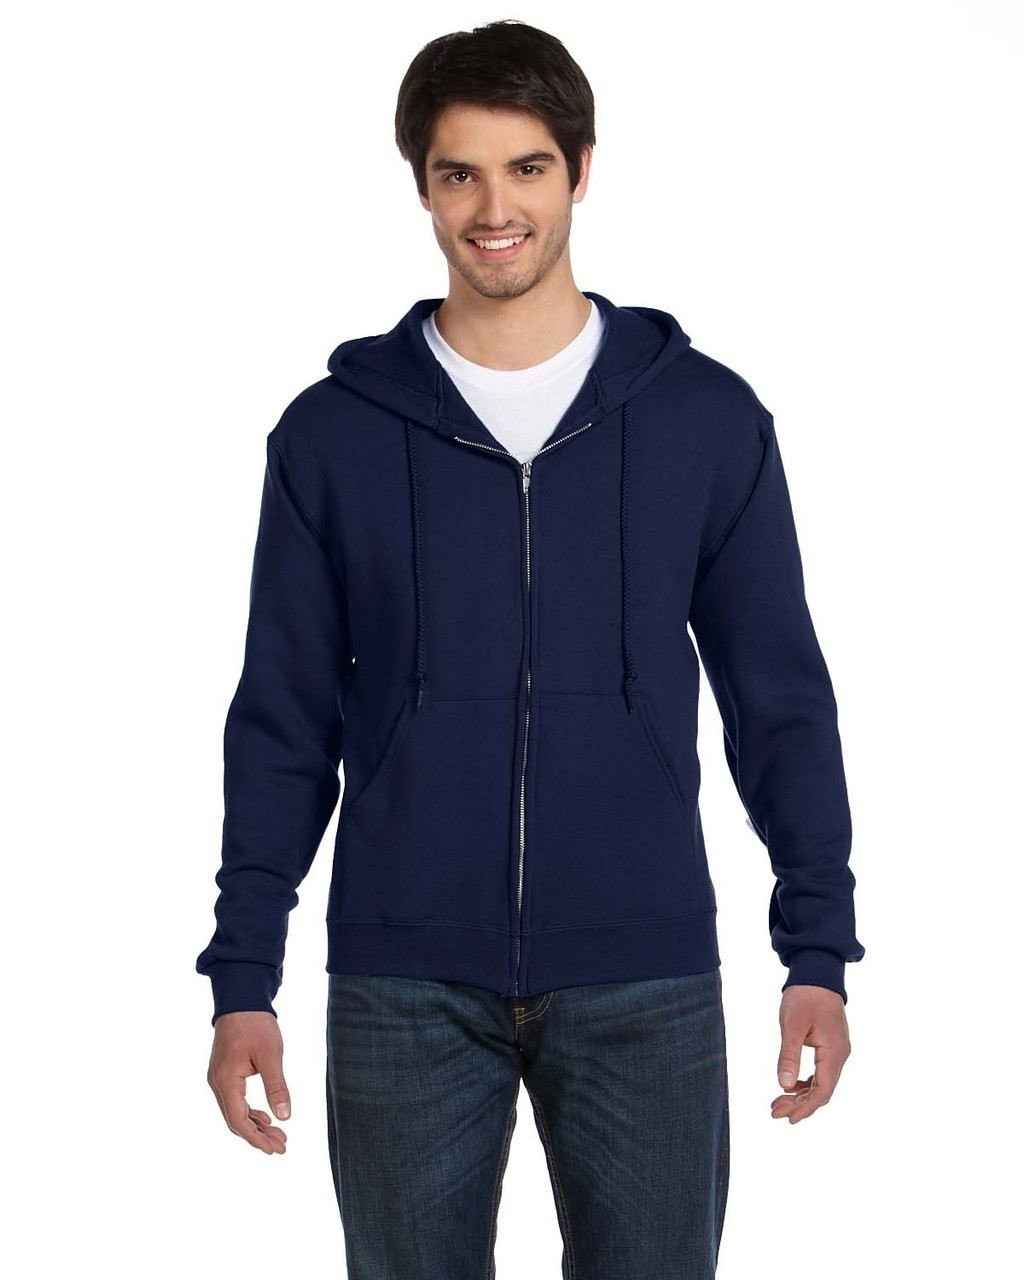 J. Navy - 82230 Fruit of the Loom Supercotton™ Full-Zip Hoodie | Blankclothing.ca